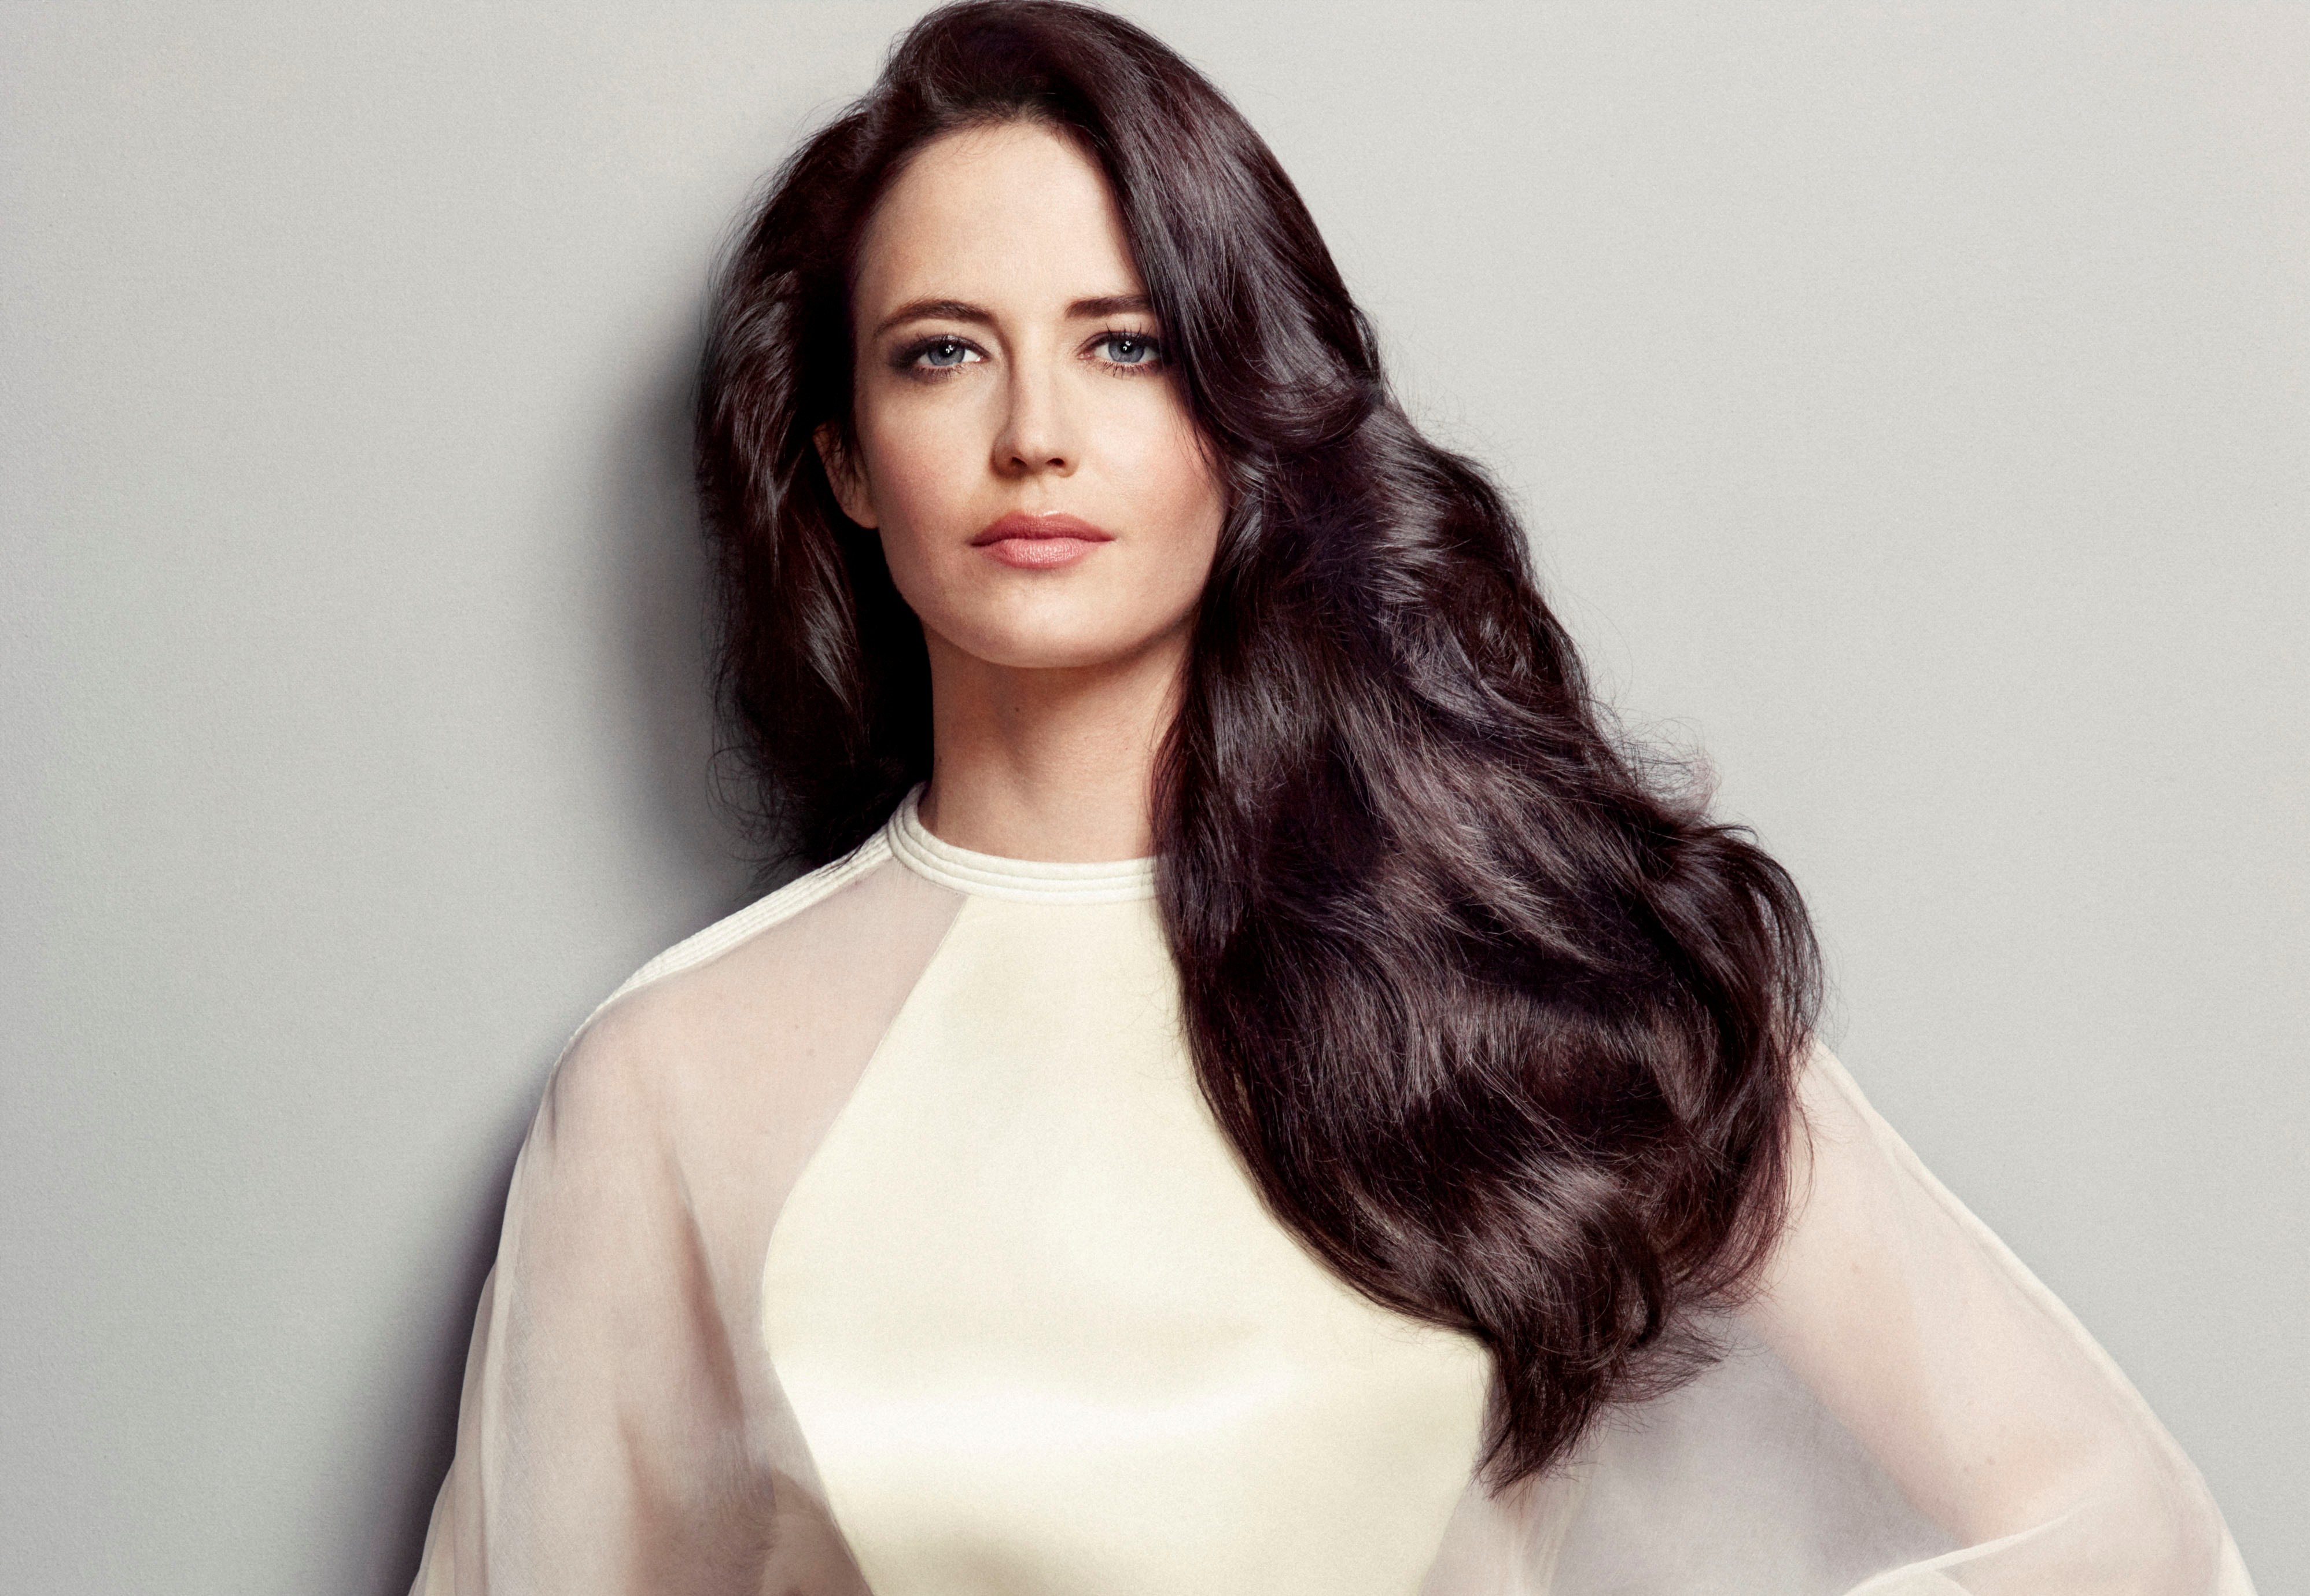 eva green wallpapers, pictures, images